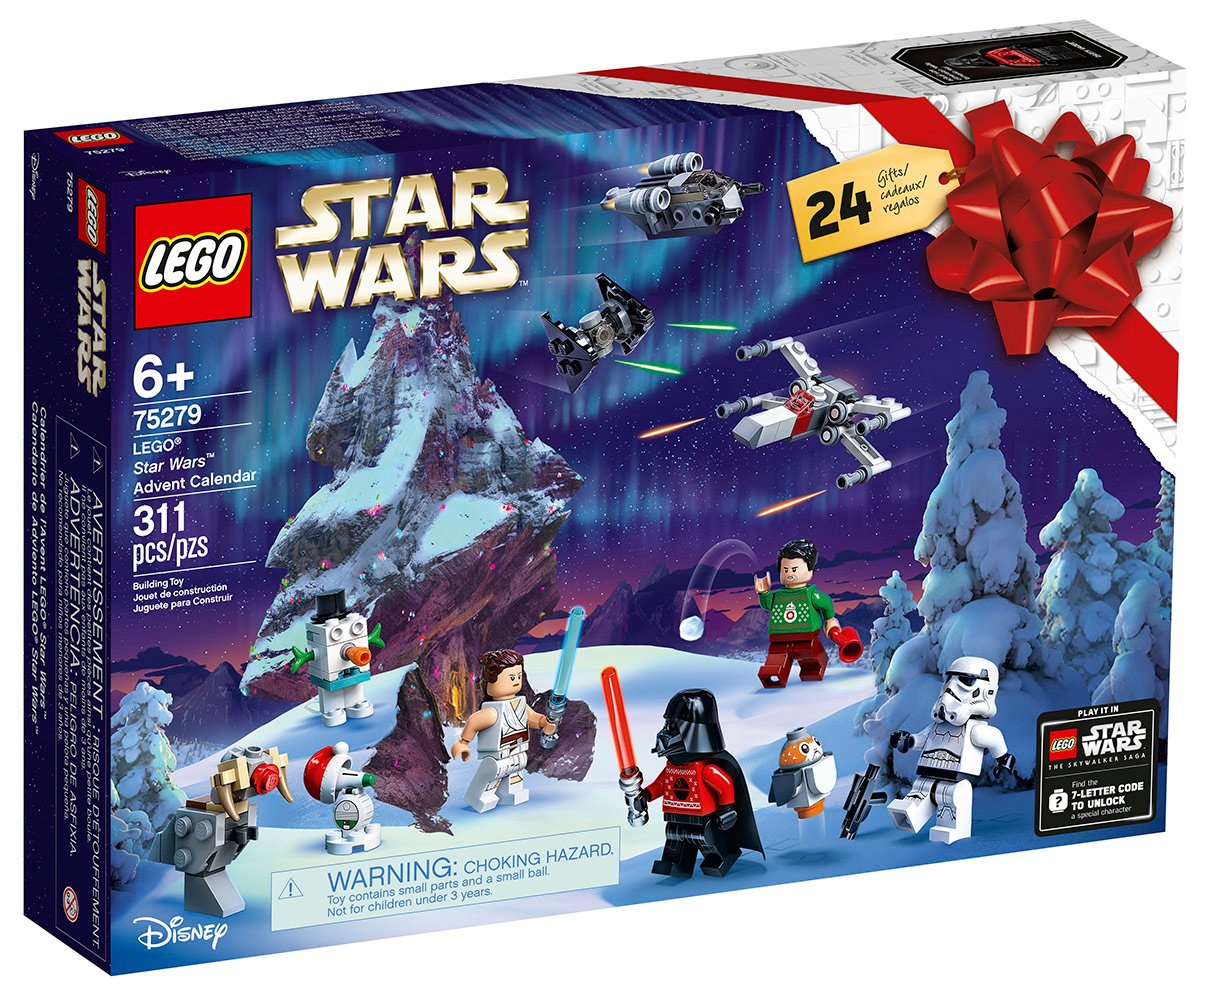 Lego Introduces New Sets To Celebrate Lego Star Wars The Skywalker Saga Star Wars News Net